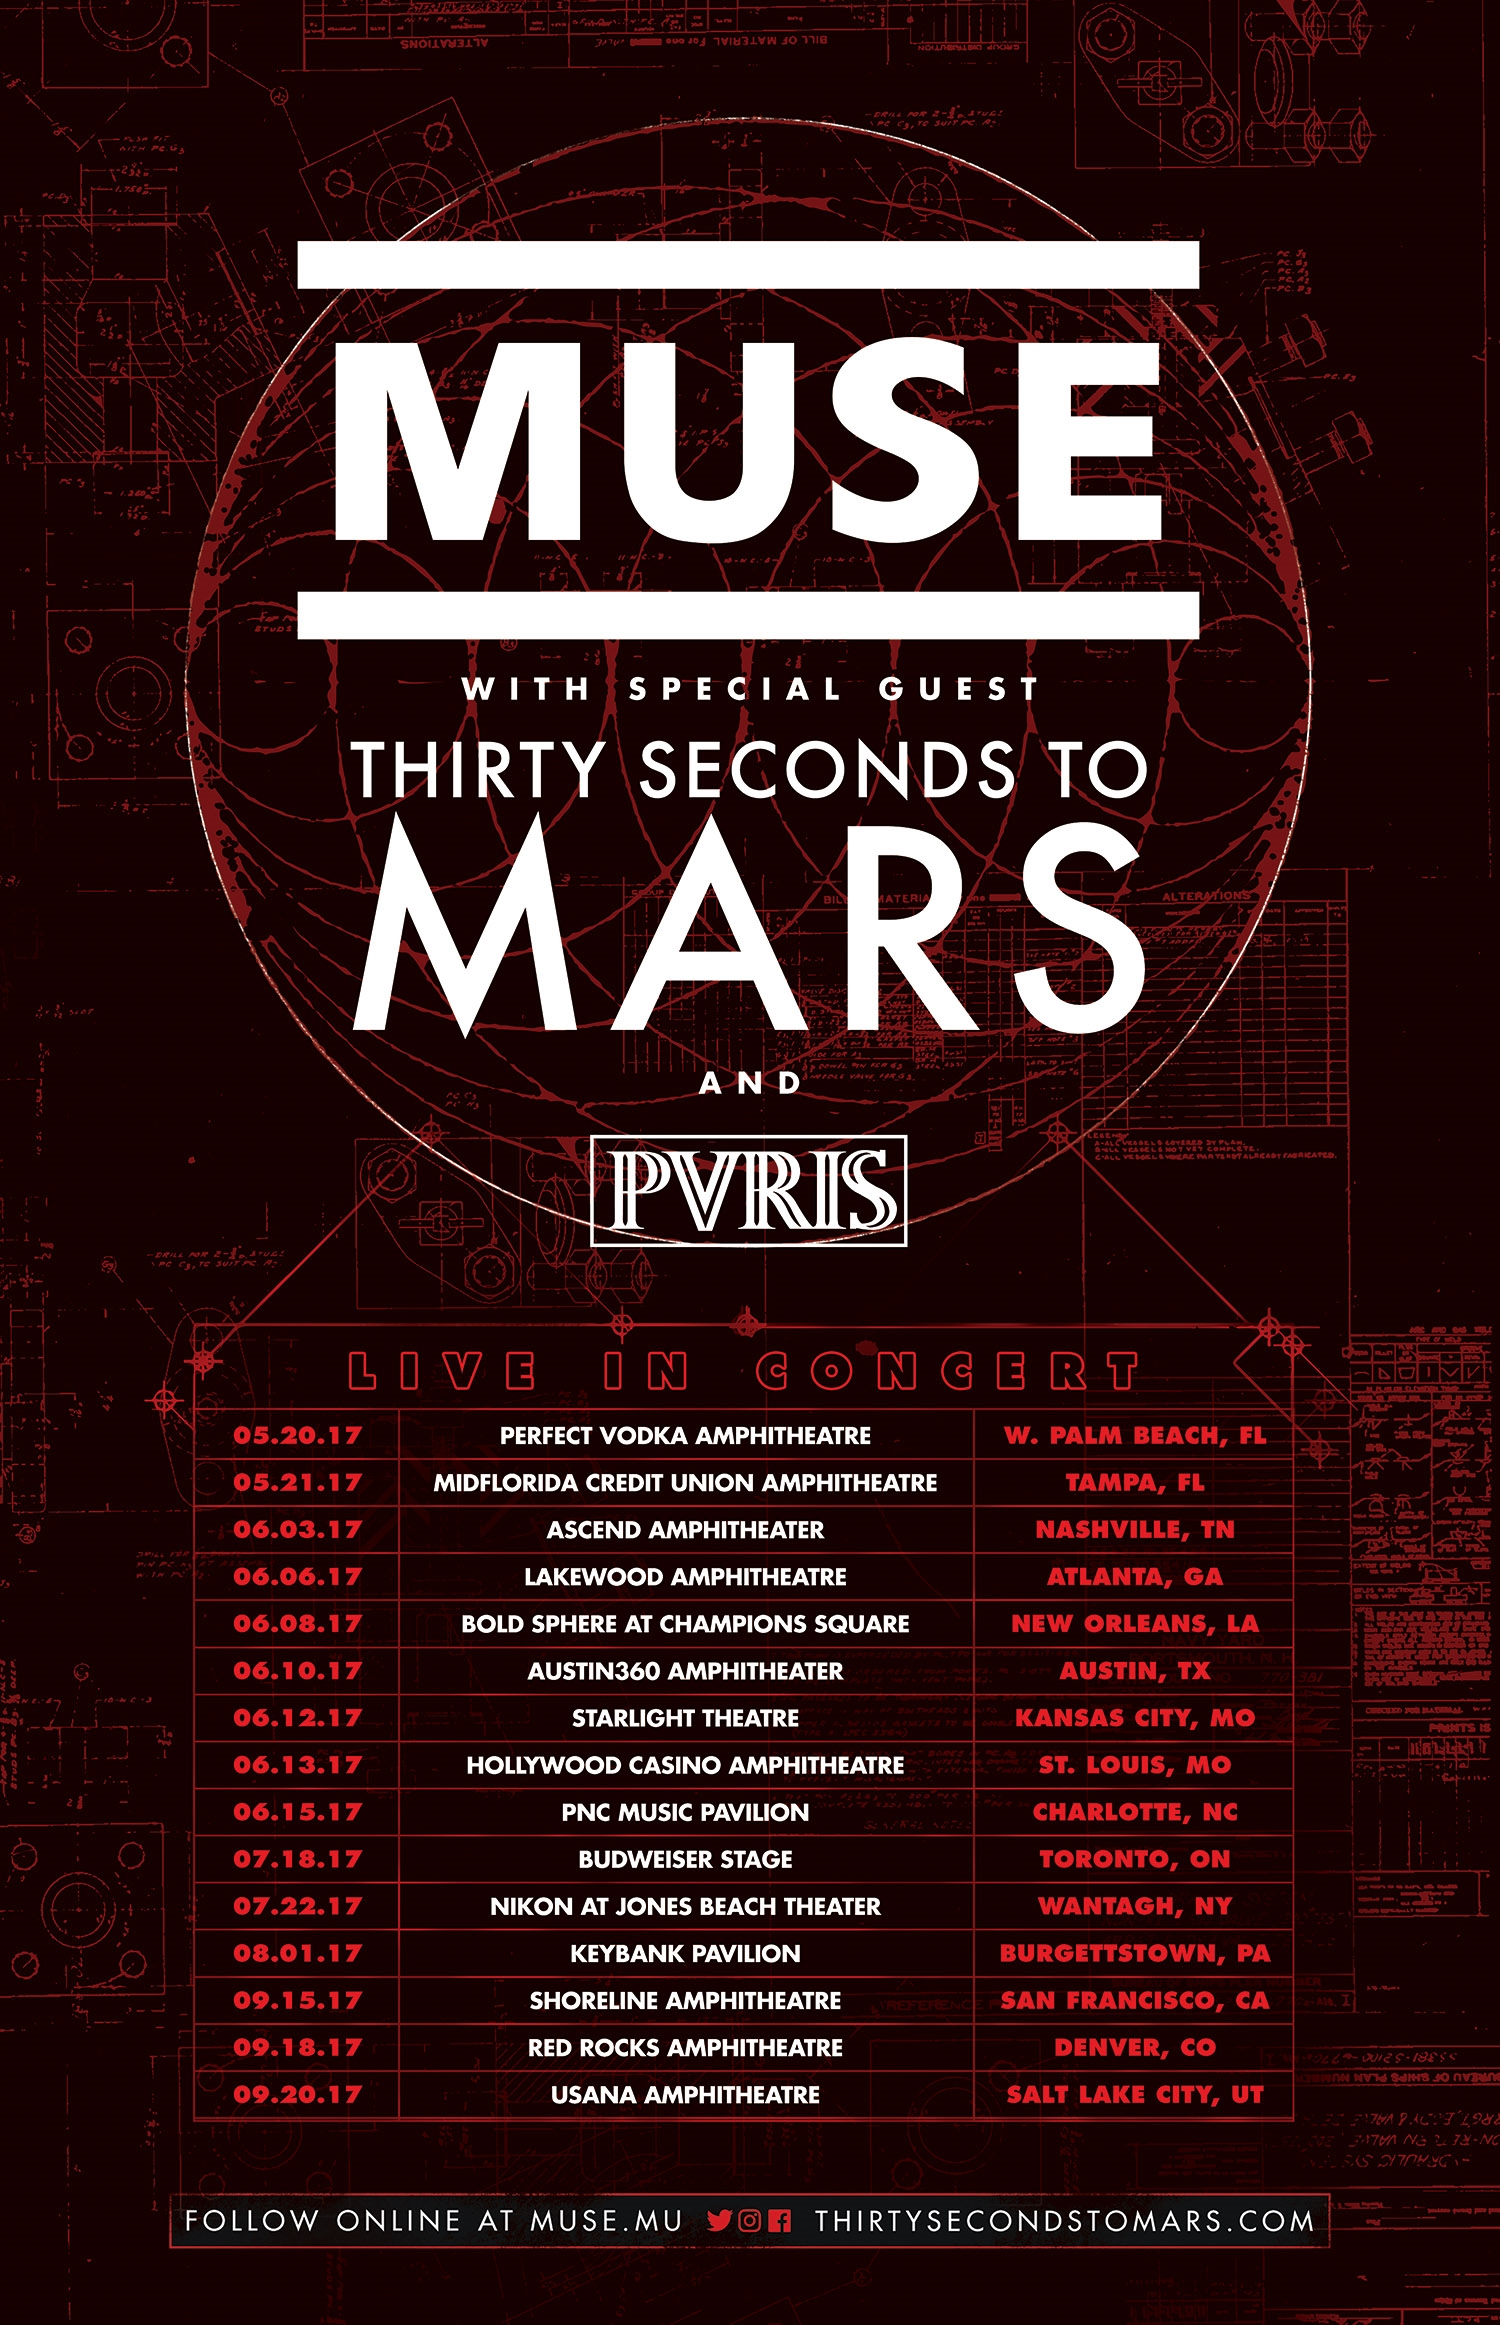 Tour announcement muse 30 seconds to mars pvris muse 30 seconds to mars and pvris announced 2017 tour dates together over many months they will be spread out over many months with more possibly to be m4hsunfo